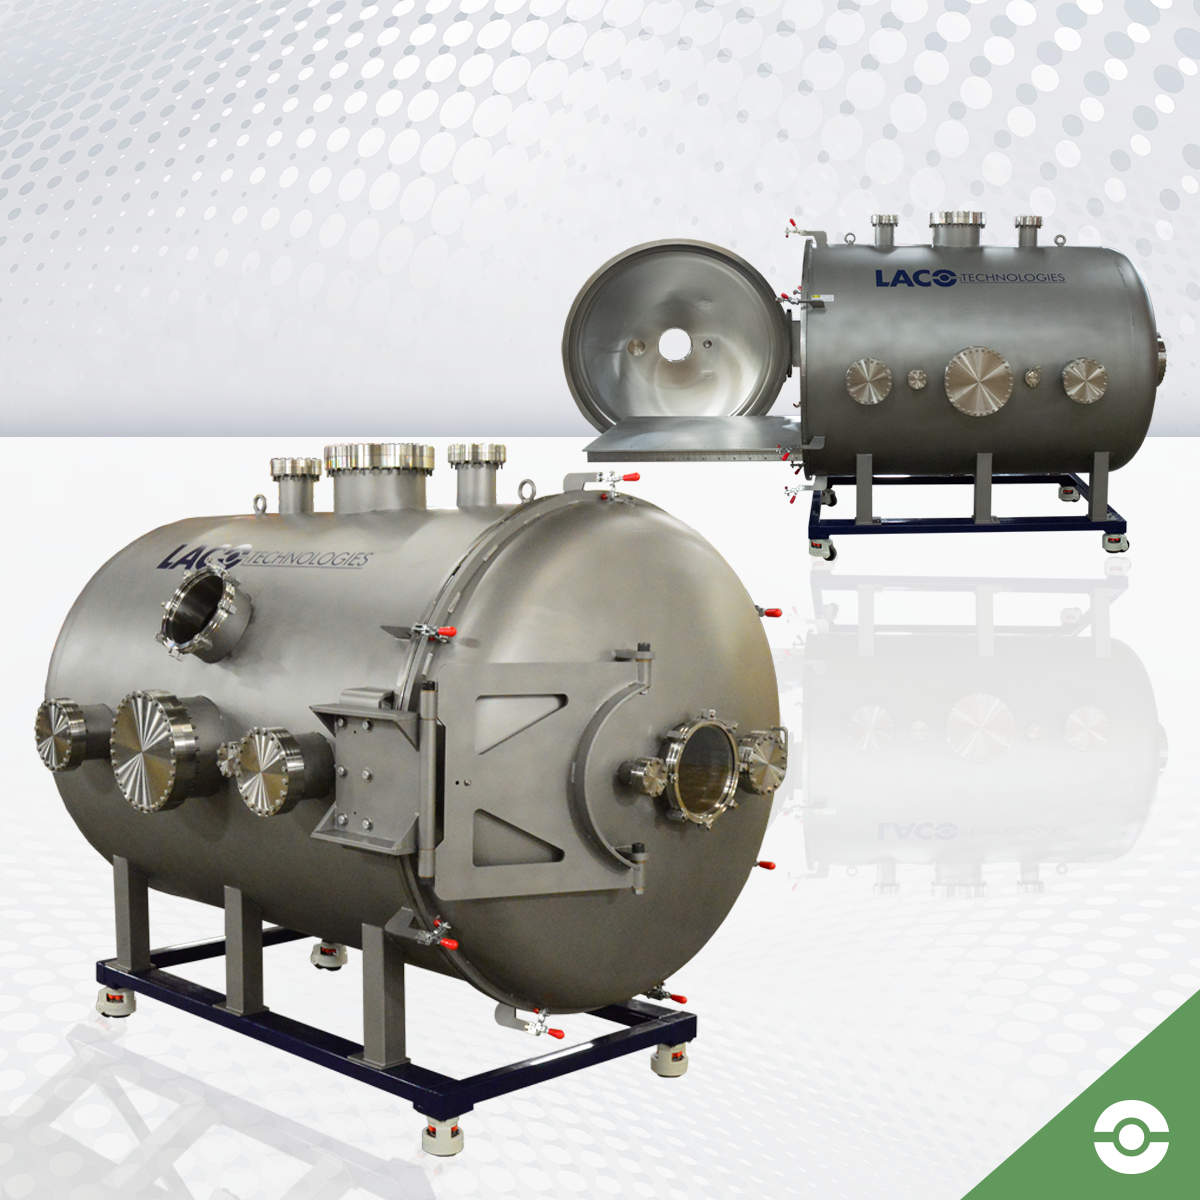 As a leading manufacturer of Vacuum Chambers and Vacuum